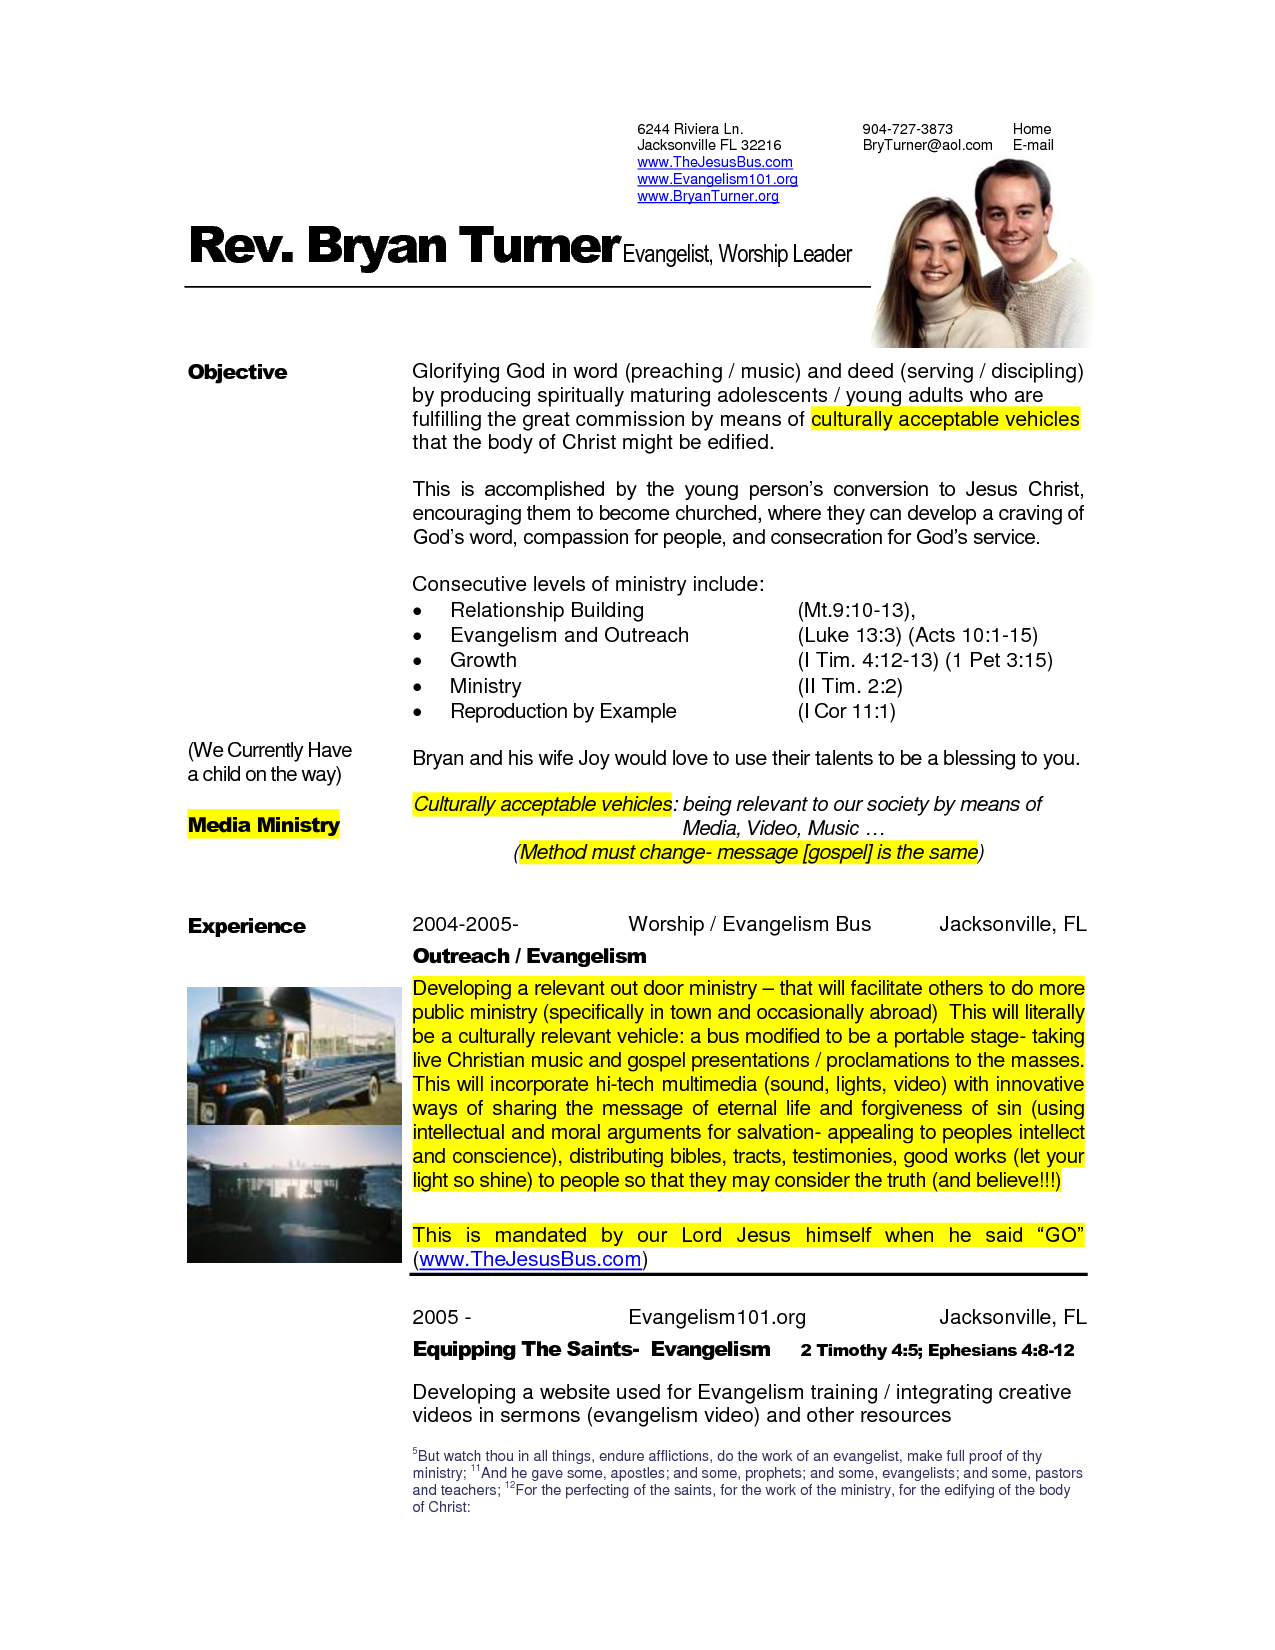 Merveilleux Free Examples Of Pastoral Resumes | How To Write A Pastor Resume